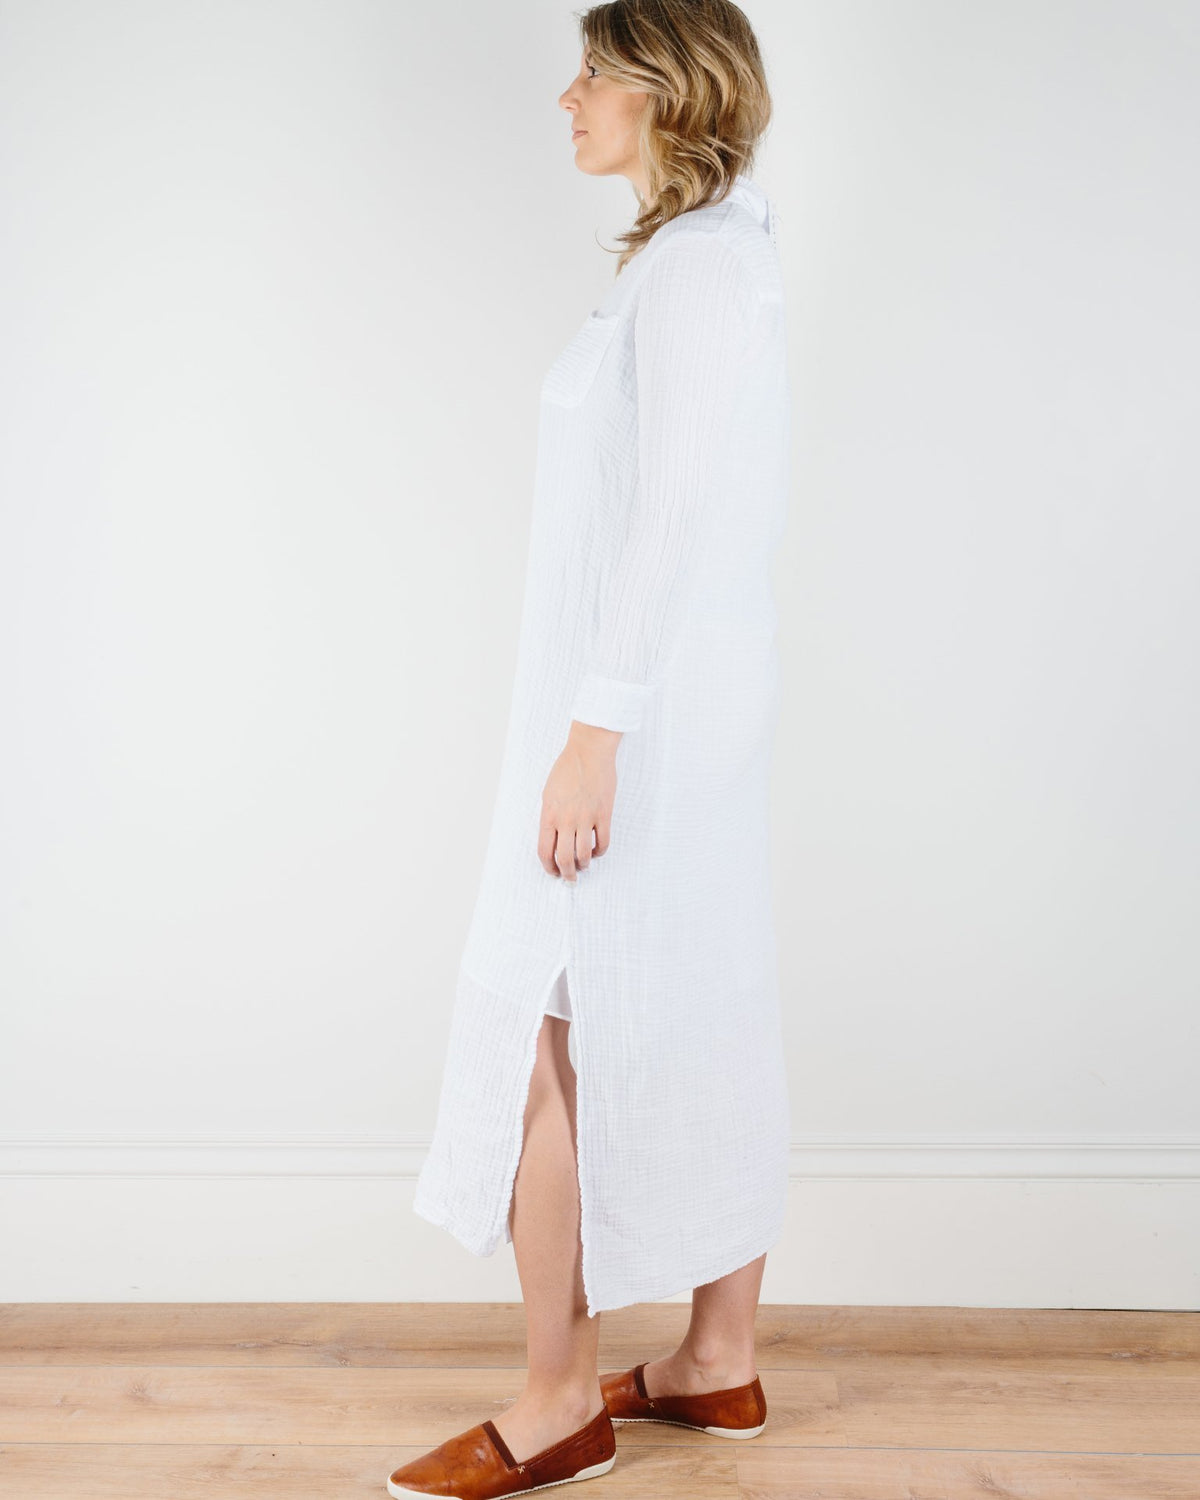 Felicite Apparel Clothing Boyfriend Maxi Dress in White